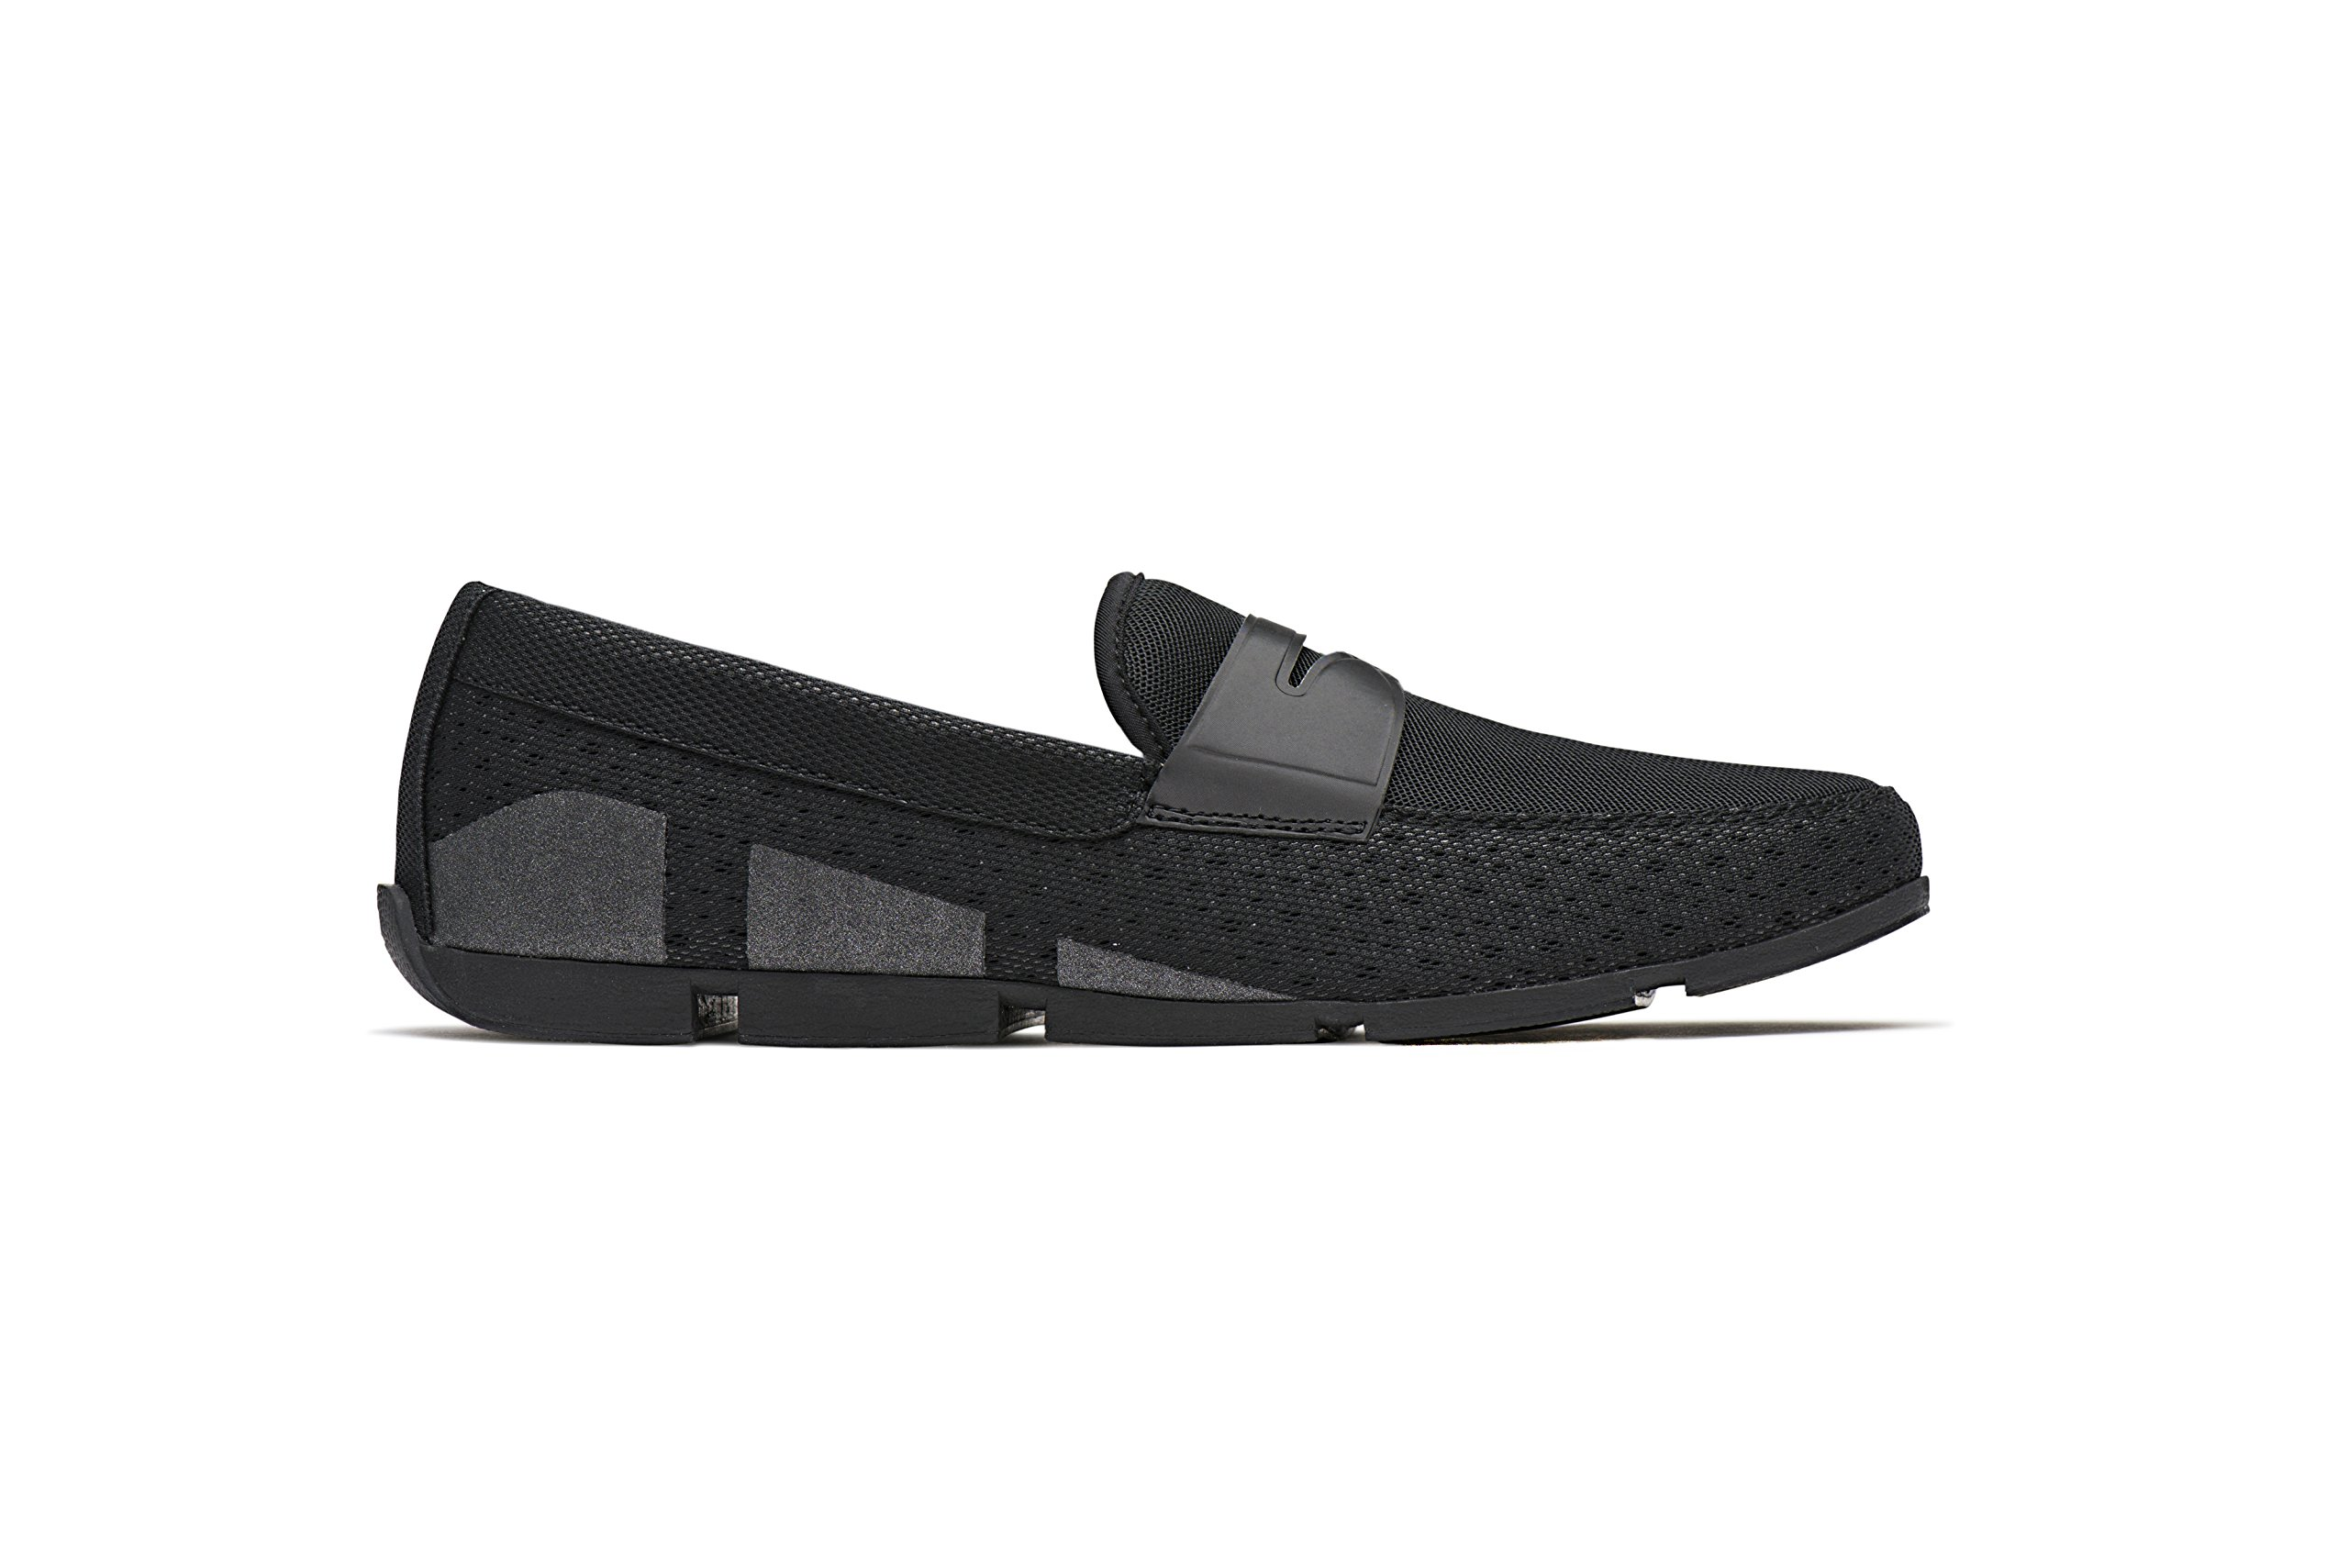 SWIMS Men's Breeze Penny Loafer For Pool and Summer, Lightweight & Flexible - Black, 10